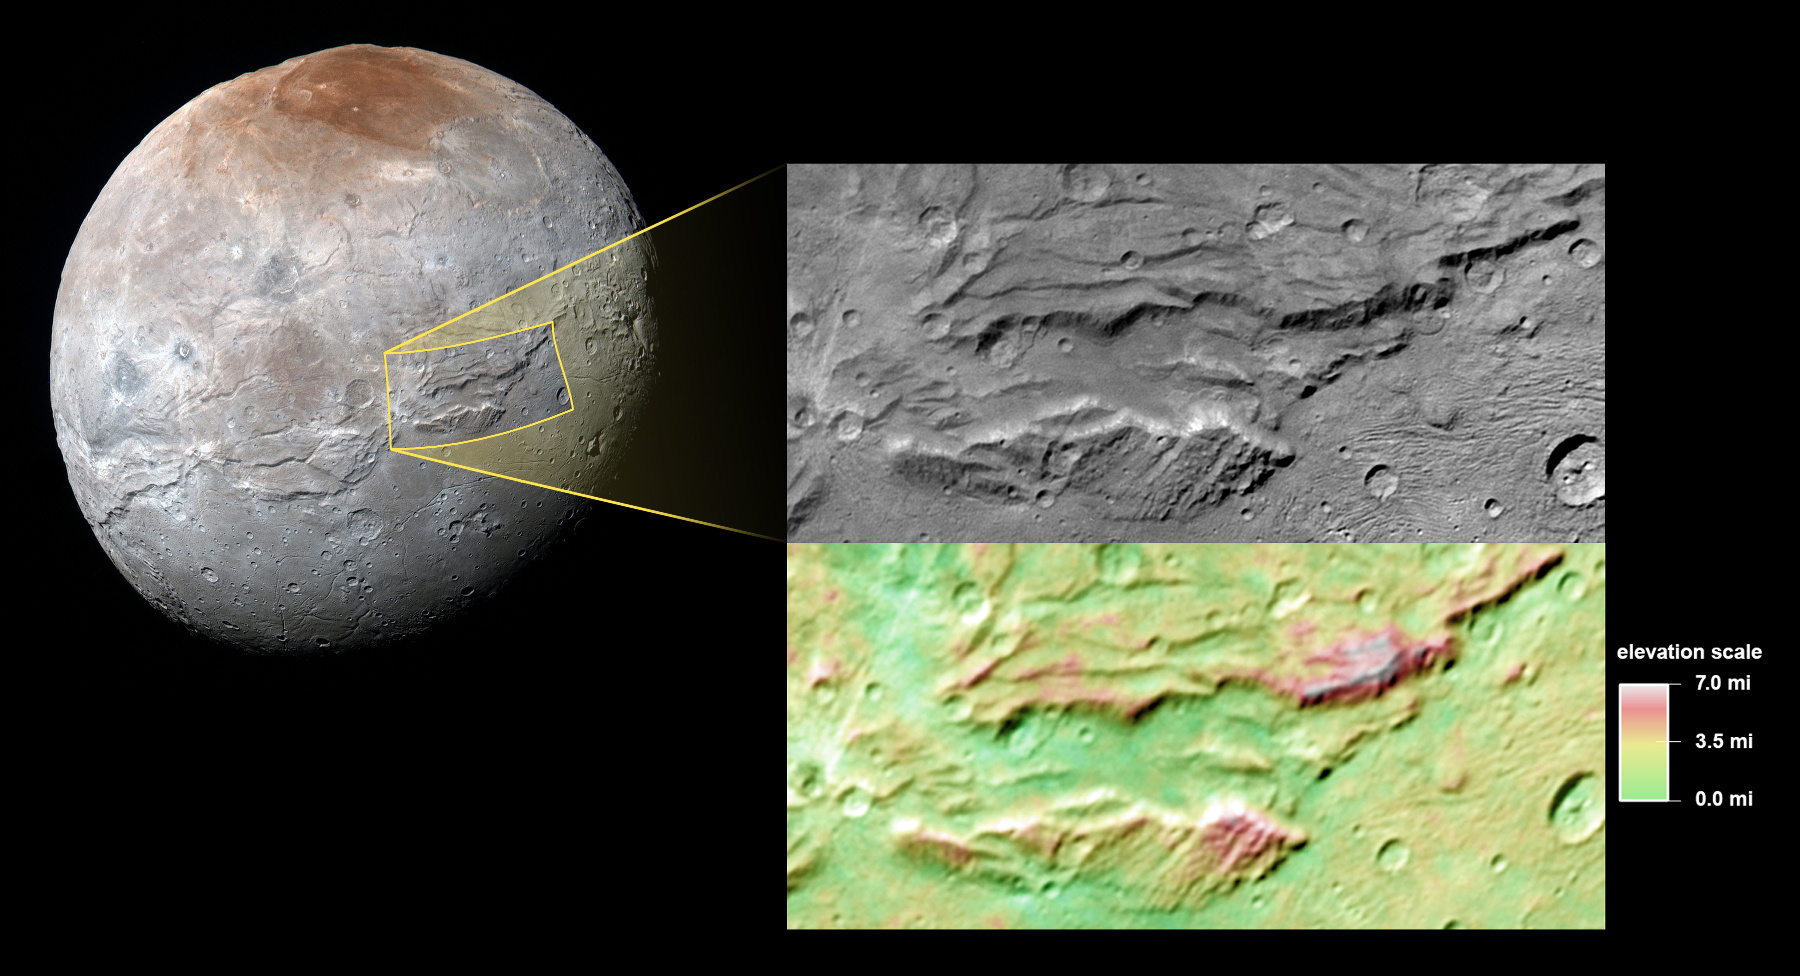 This image focuses on a section of the feature informally named Serenity Chasma, part of a vast equatorial belt of chasms on Pluto's largest moon, Charon. In fact, this system of chasms is one of the longest seen anywhere in the solar system, running at least 1,100 miles (about 1,800 kilometres) long and reaching 4½ miles (7½ kilometres) deep. By comparison, the Grand Canyon is 277 miles (446 kilometres) long and just over a mile (1.6 kilometres) deep. The lower portion of the image shows colour-coded topography of the same scene. Measurements of the shape of this feature tell scientists that Charon's subsurface water-ice layer may have been at least partially liquid in its early history, and has since refrozen, expanded (as happens when water freezes), pushing the surface outward and producing the massive chasms we see today. Image credit: Image credit: NASA/Johns Hopkins University Applied Physics Laboratory/Southwest Research Institute.